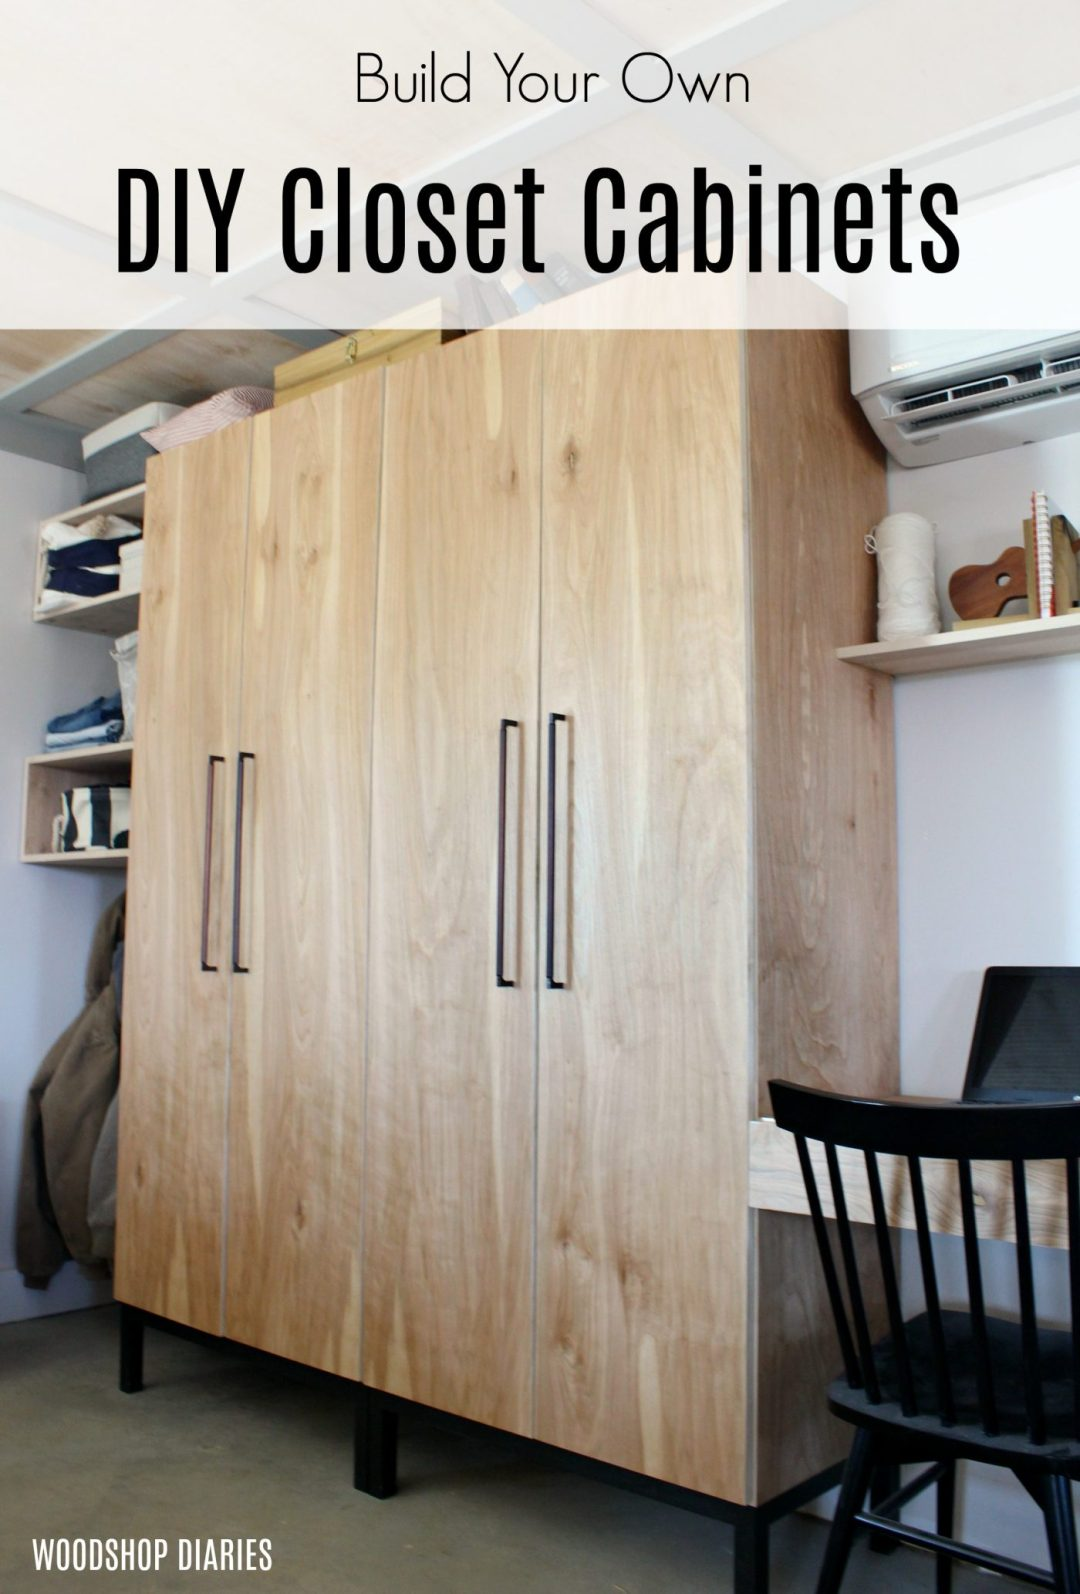 How to Build a DIY Closet Cabinet--With Closet Rod, Shoe Shelf, and Adjustable Shelves